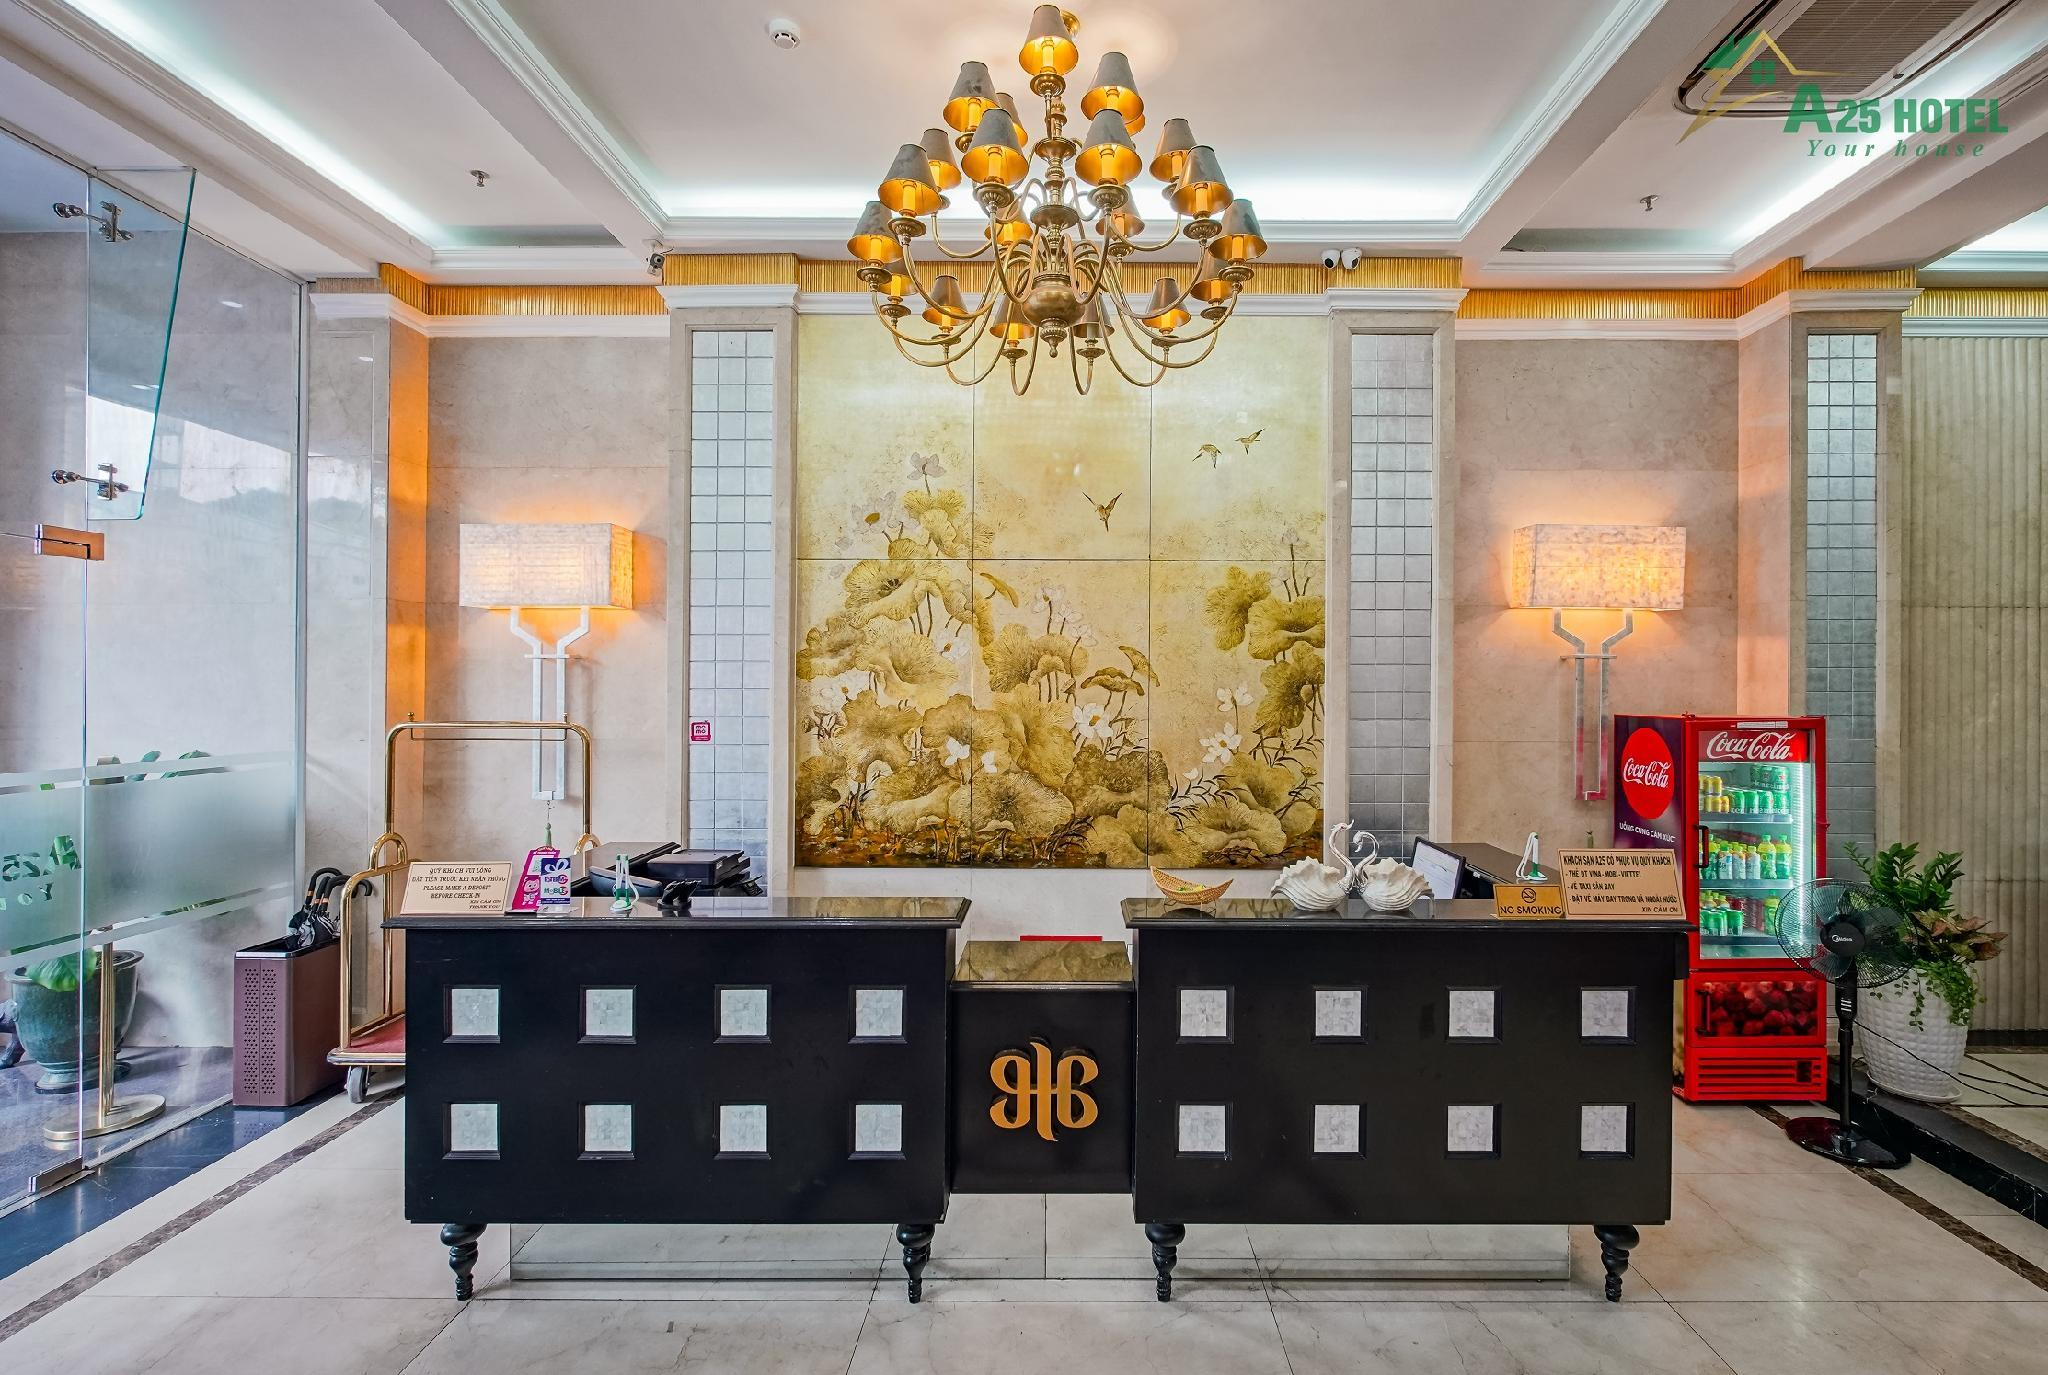 A25 Star Hotel   06 Truong Dinh